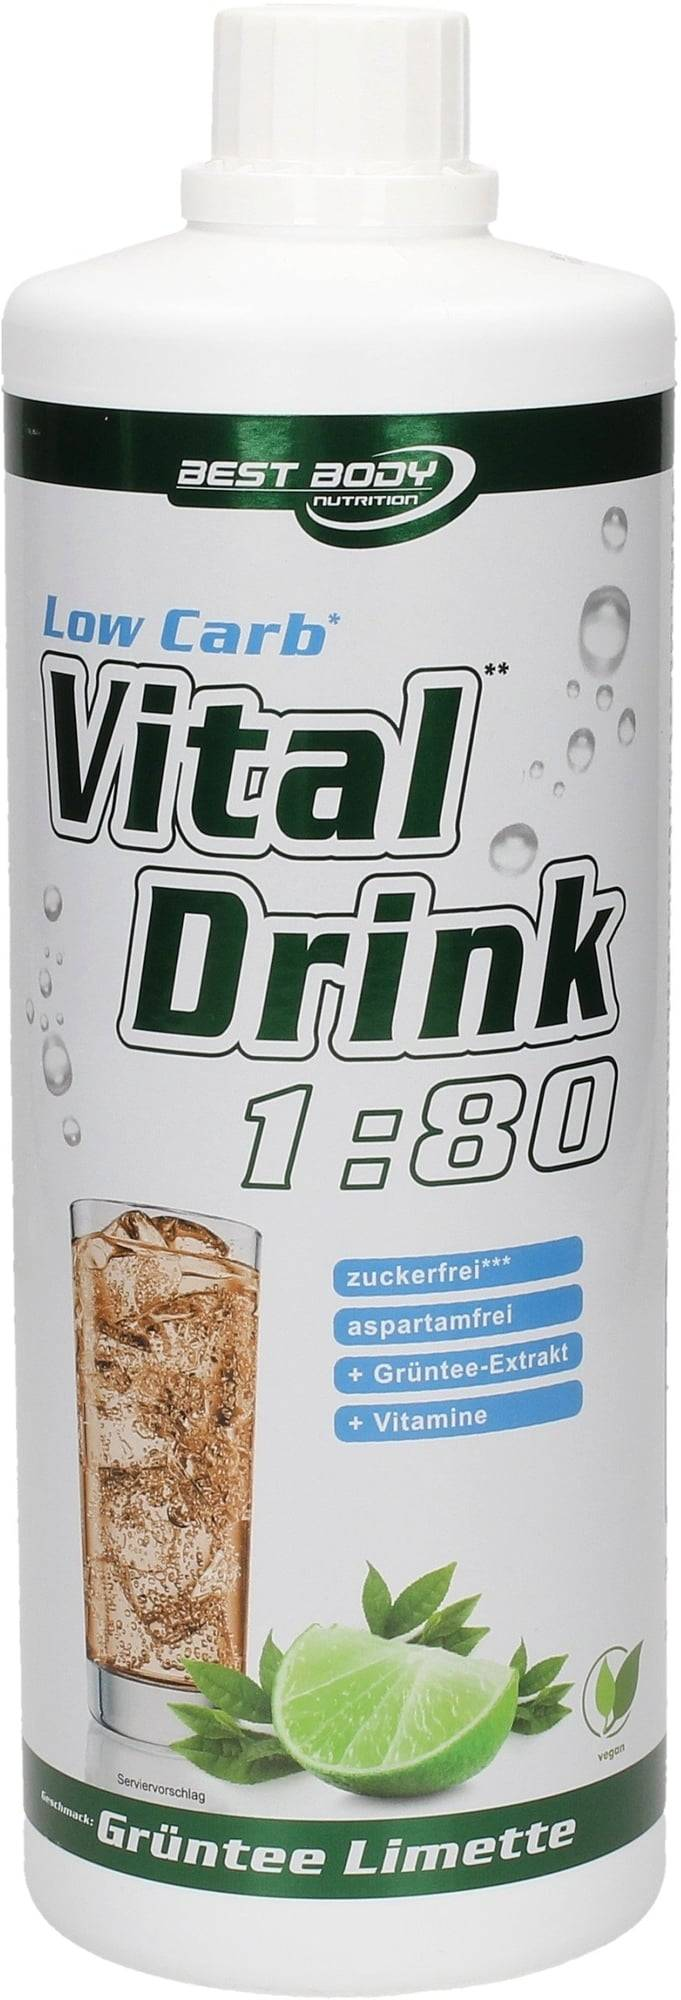 Best Body Nutrition Low Carb Vital Drink - Thé vert-citron vert